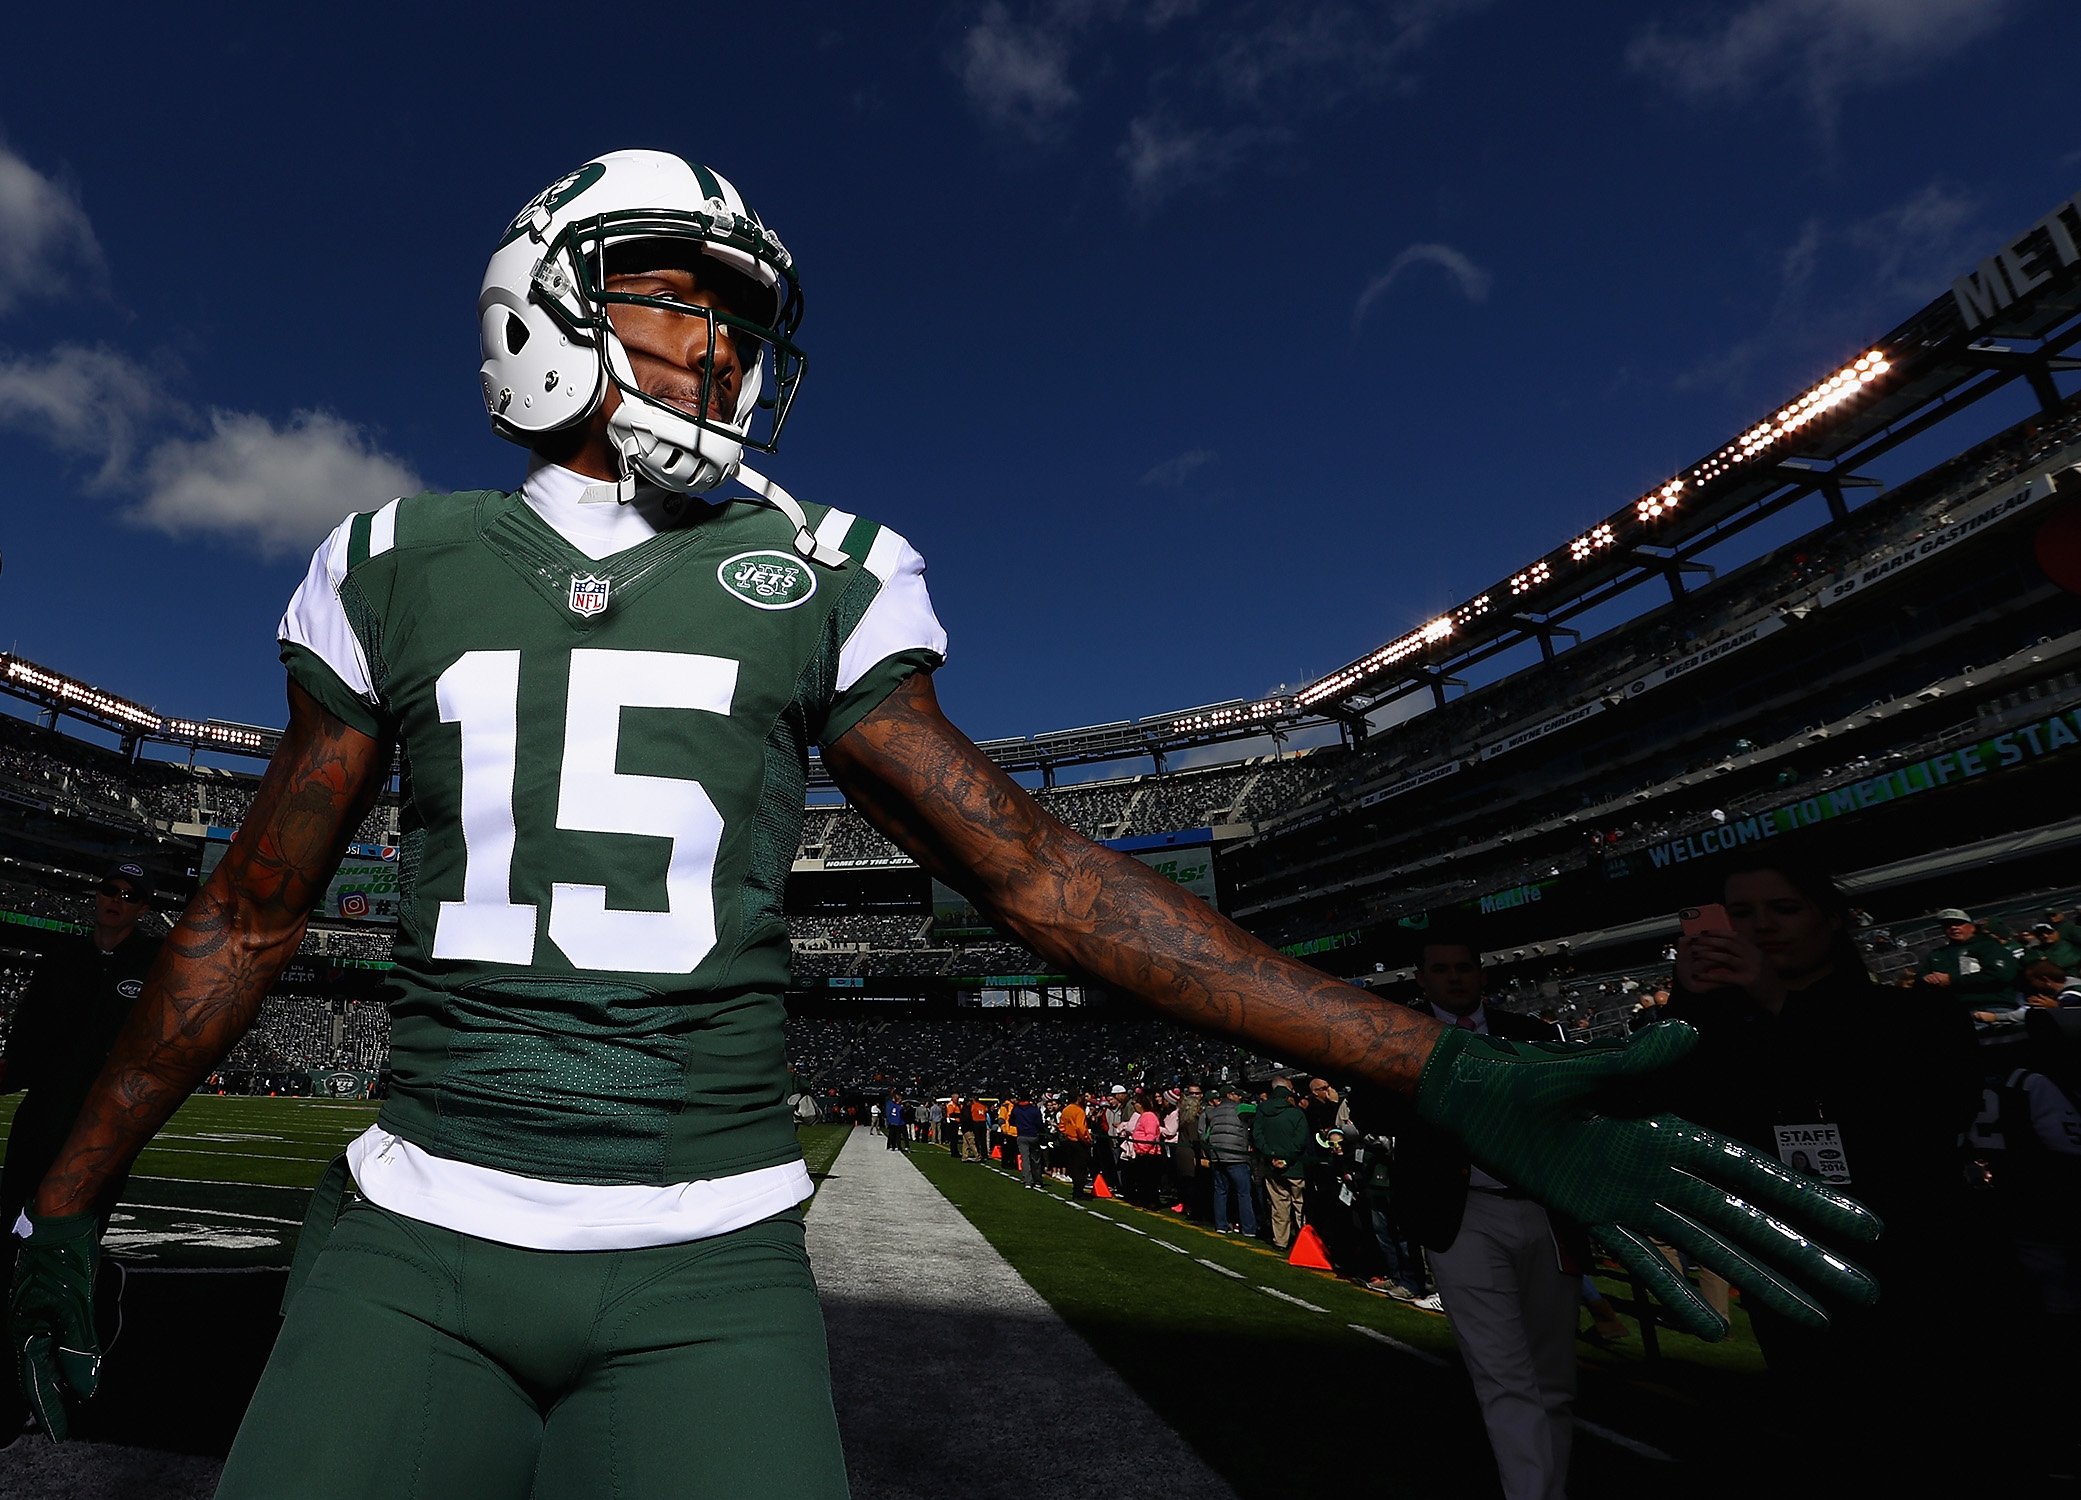 Brandon Marshall signs with the Giants, and Odell Beckham Jr. should be thrilled